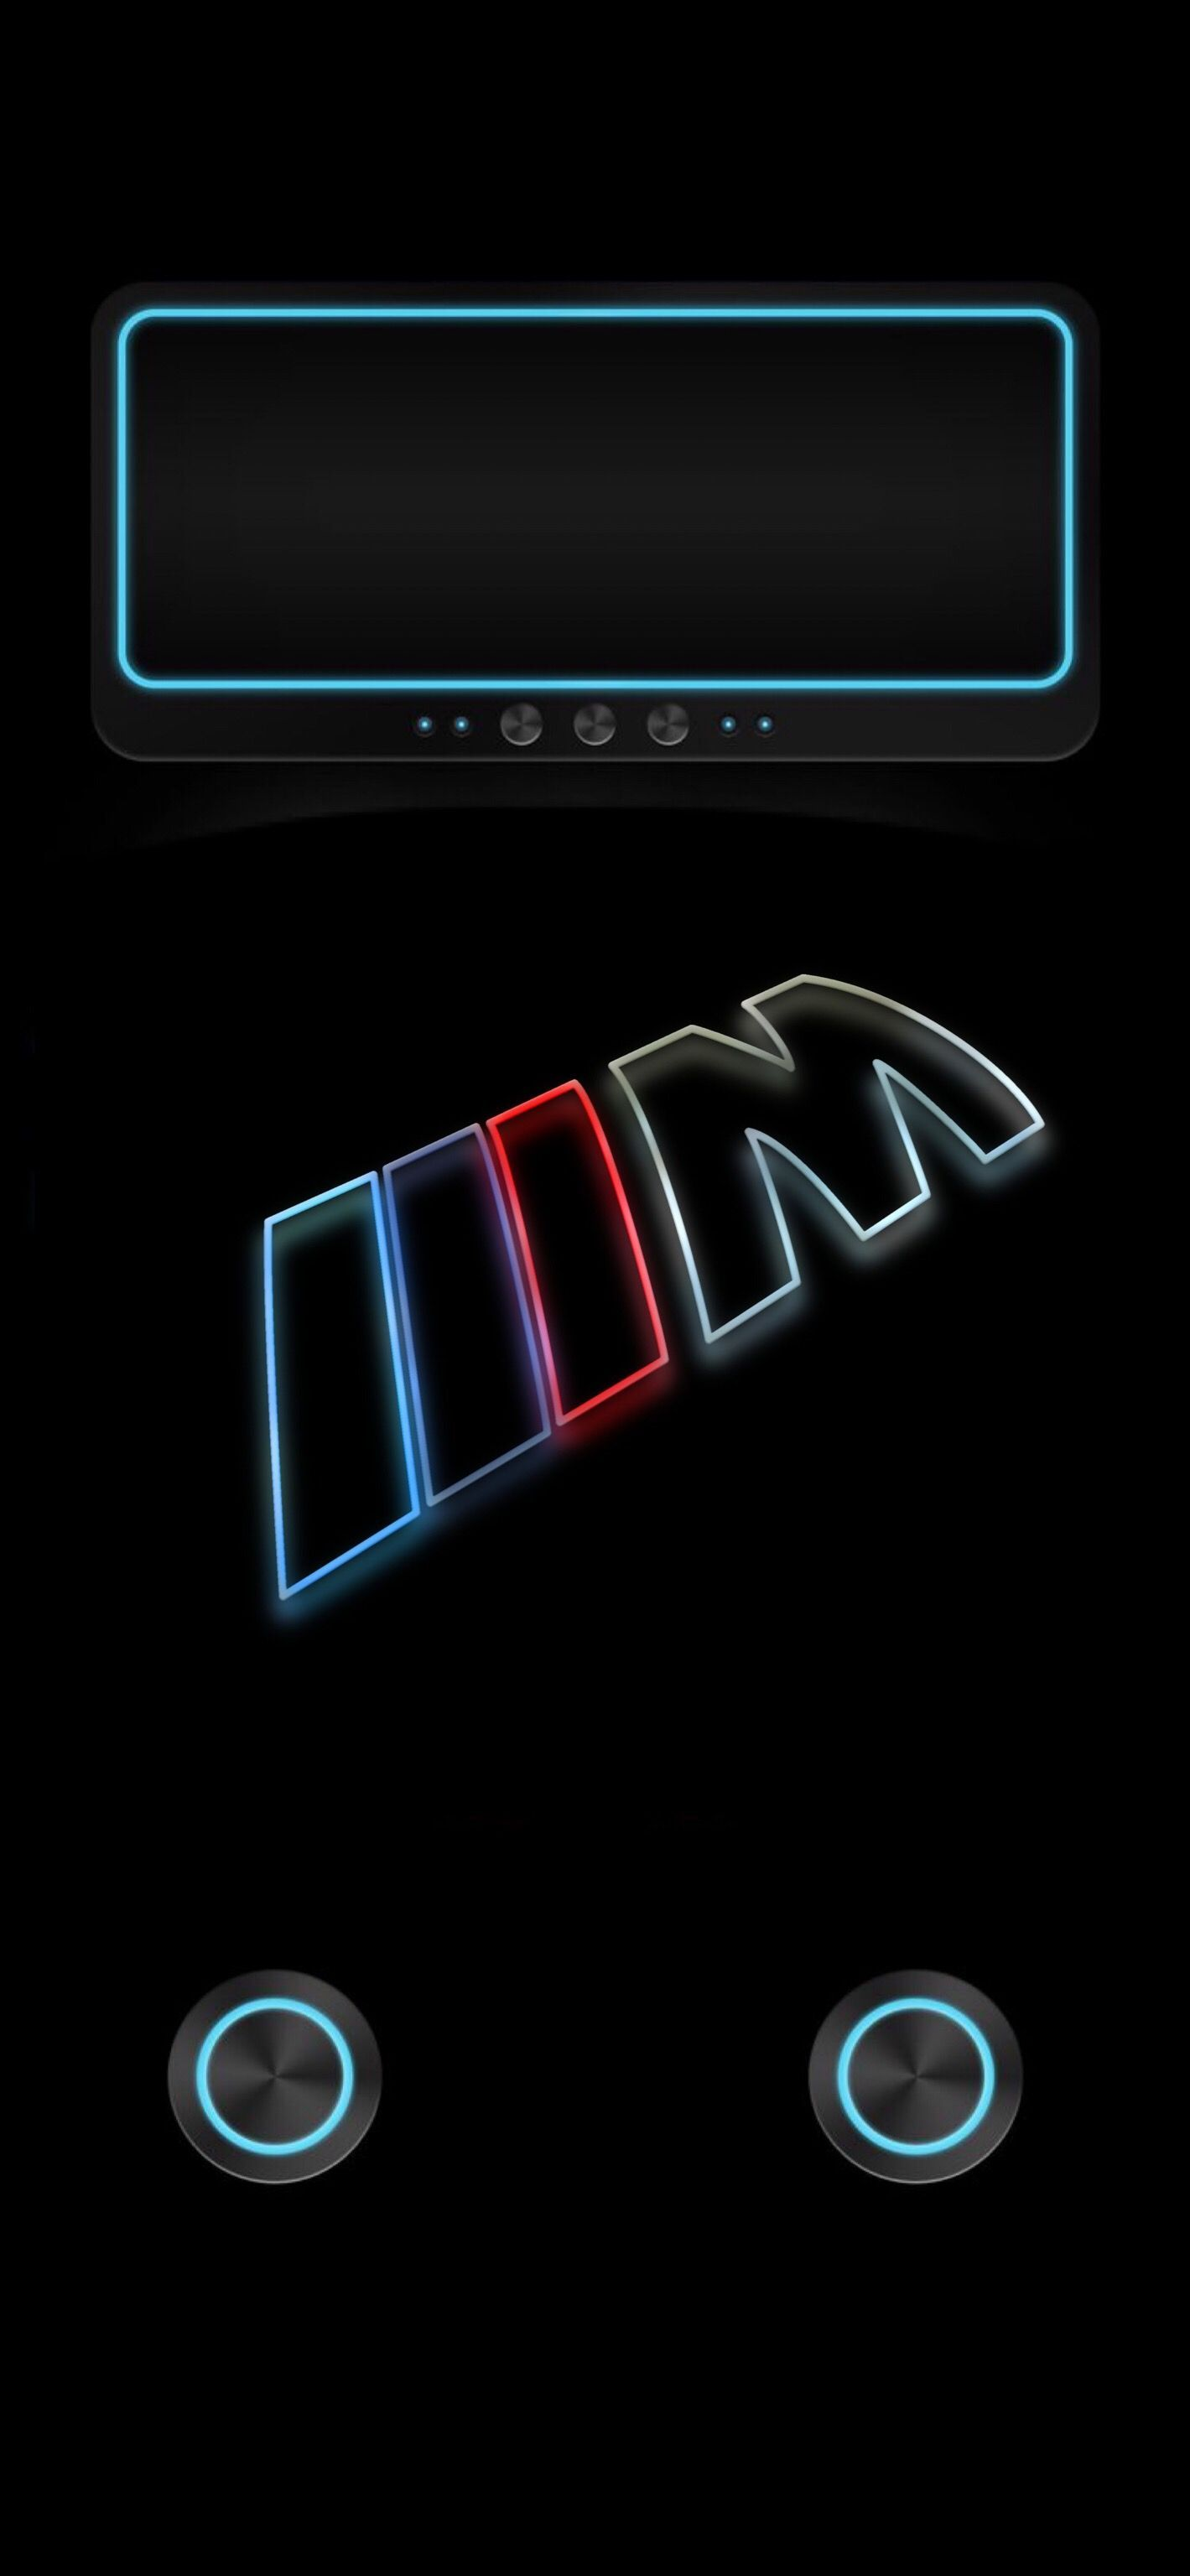 1419x3072 Wallpaper iPhone X - BMW ///M v1 | IPhone X Wallpaper by Ben™ in ...